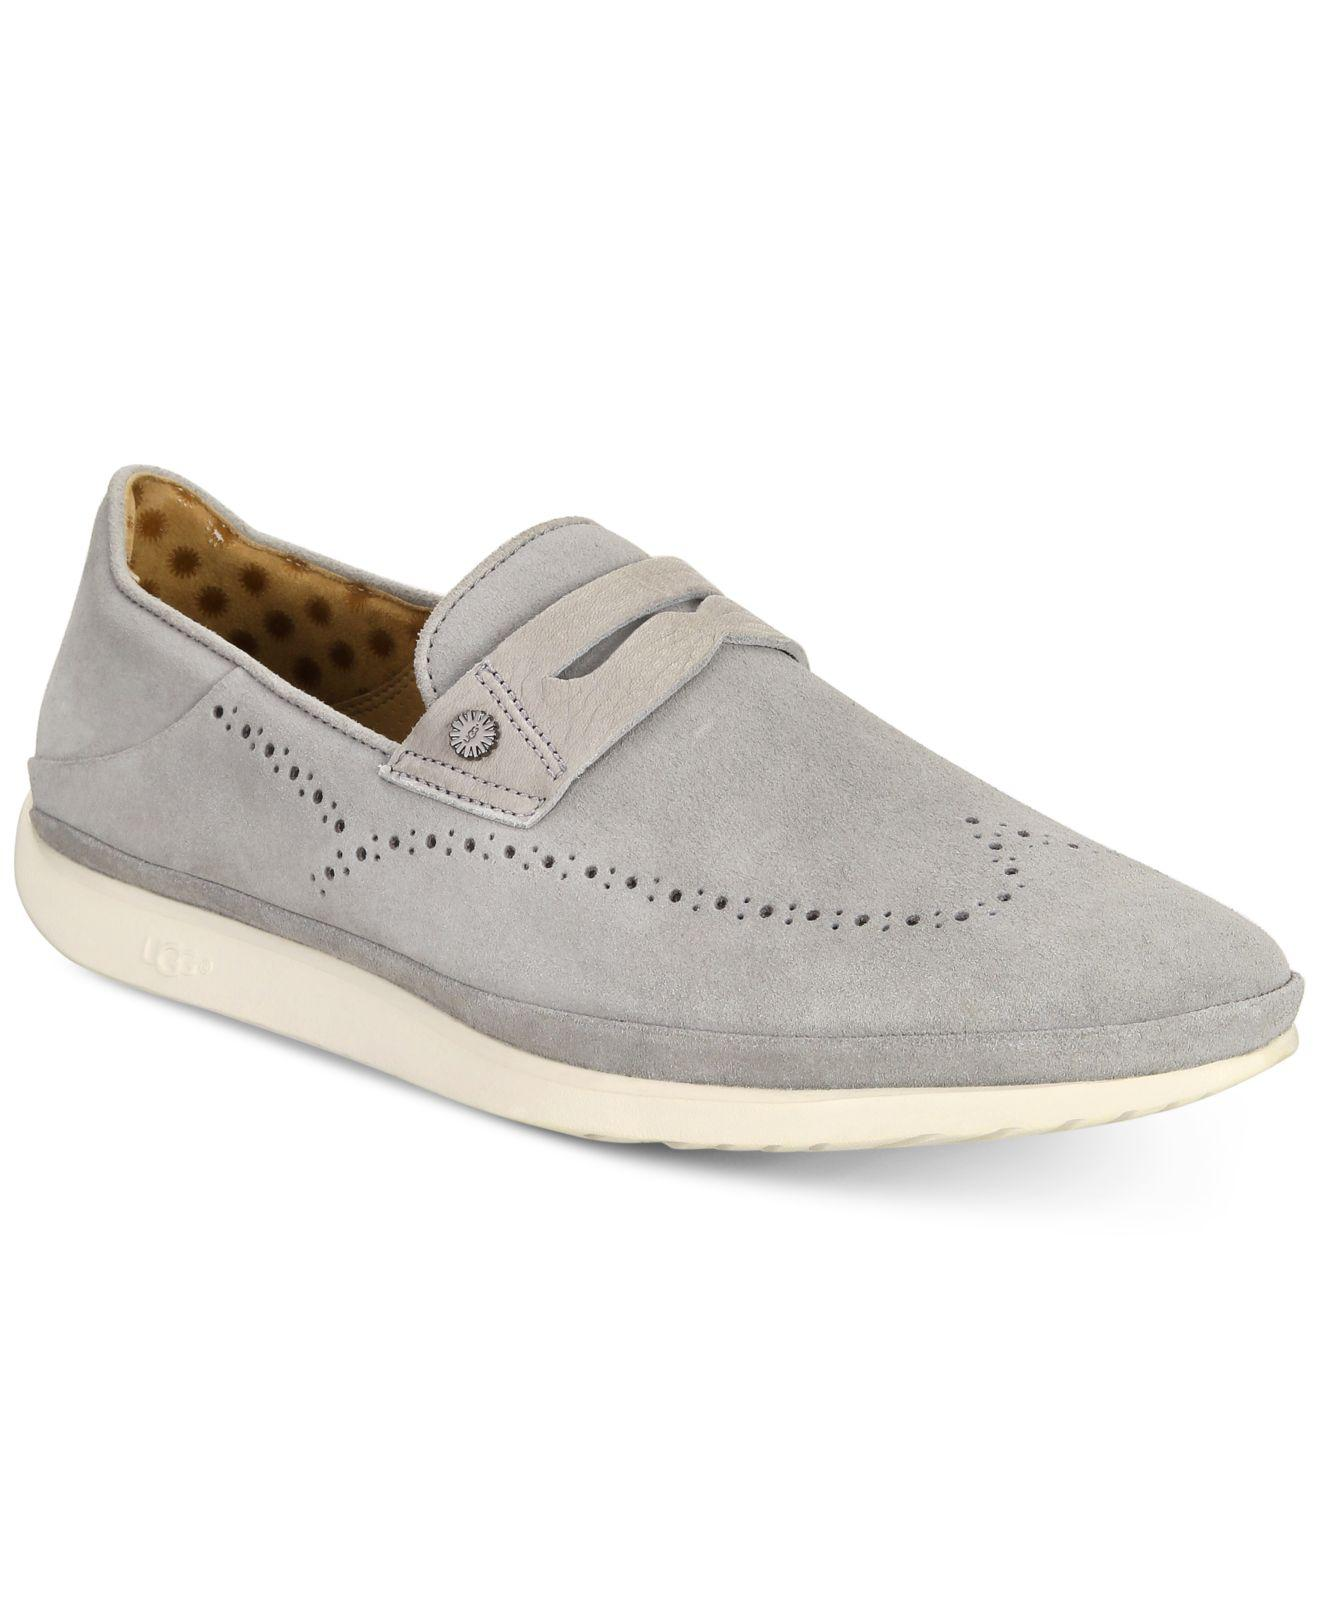 343110a5ca5 Lyst - UGG Cali Penny Slip-on Loafers in Gray for Men